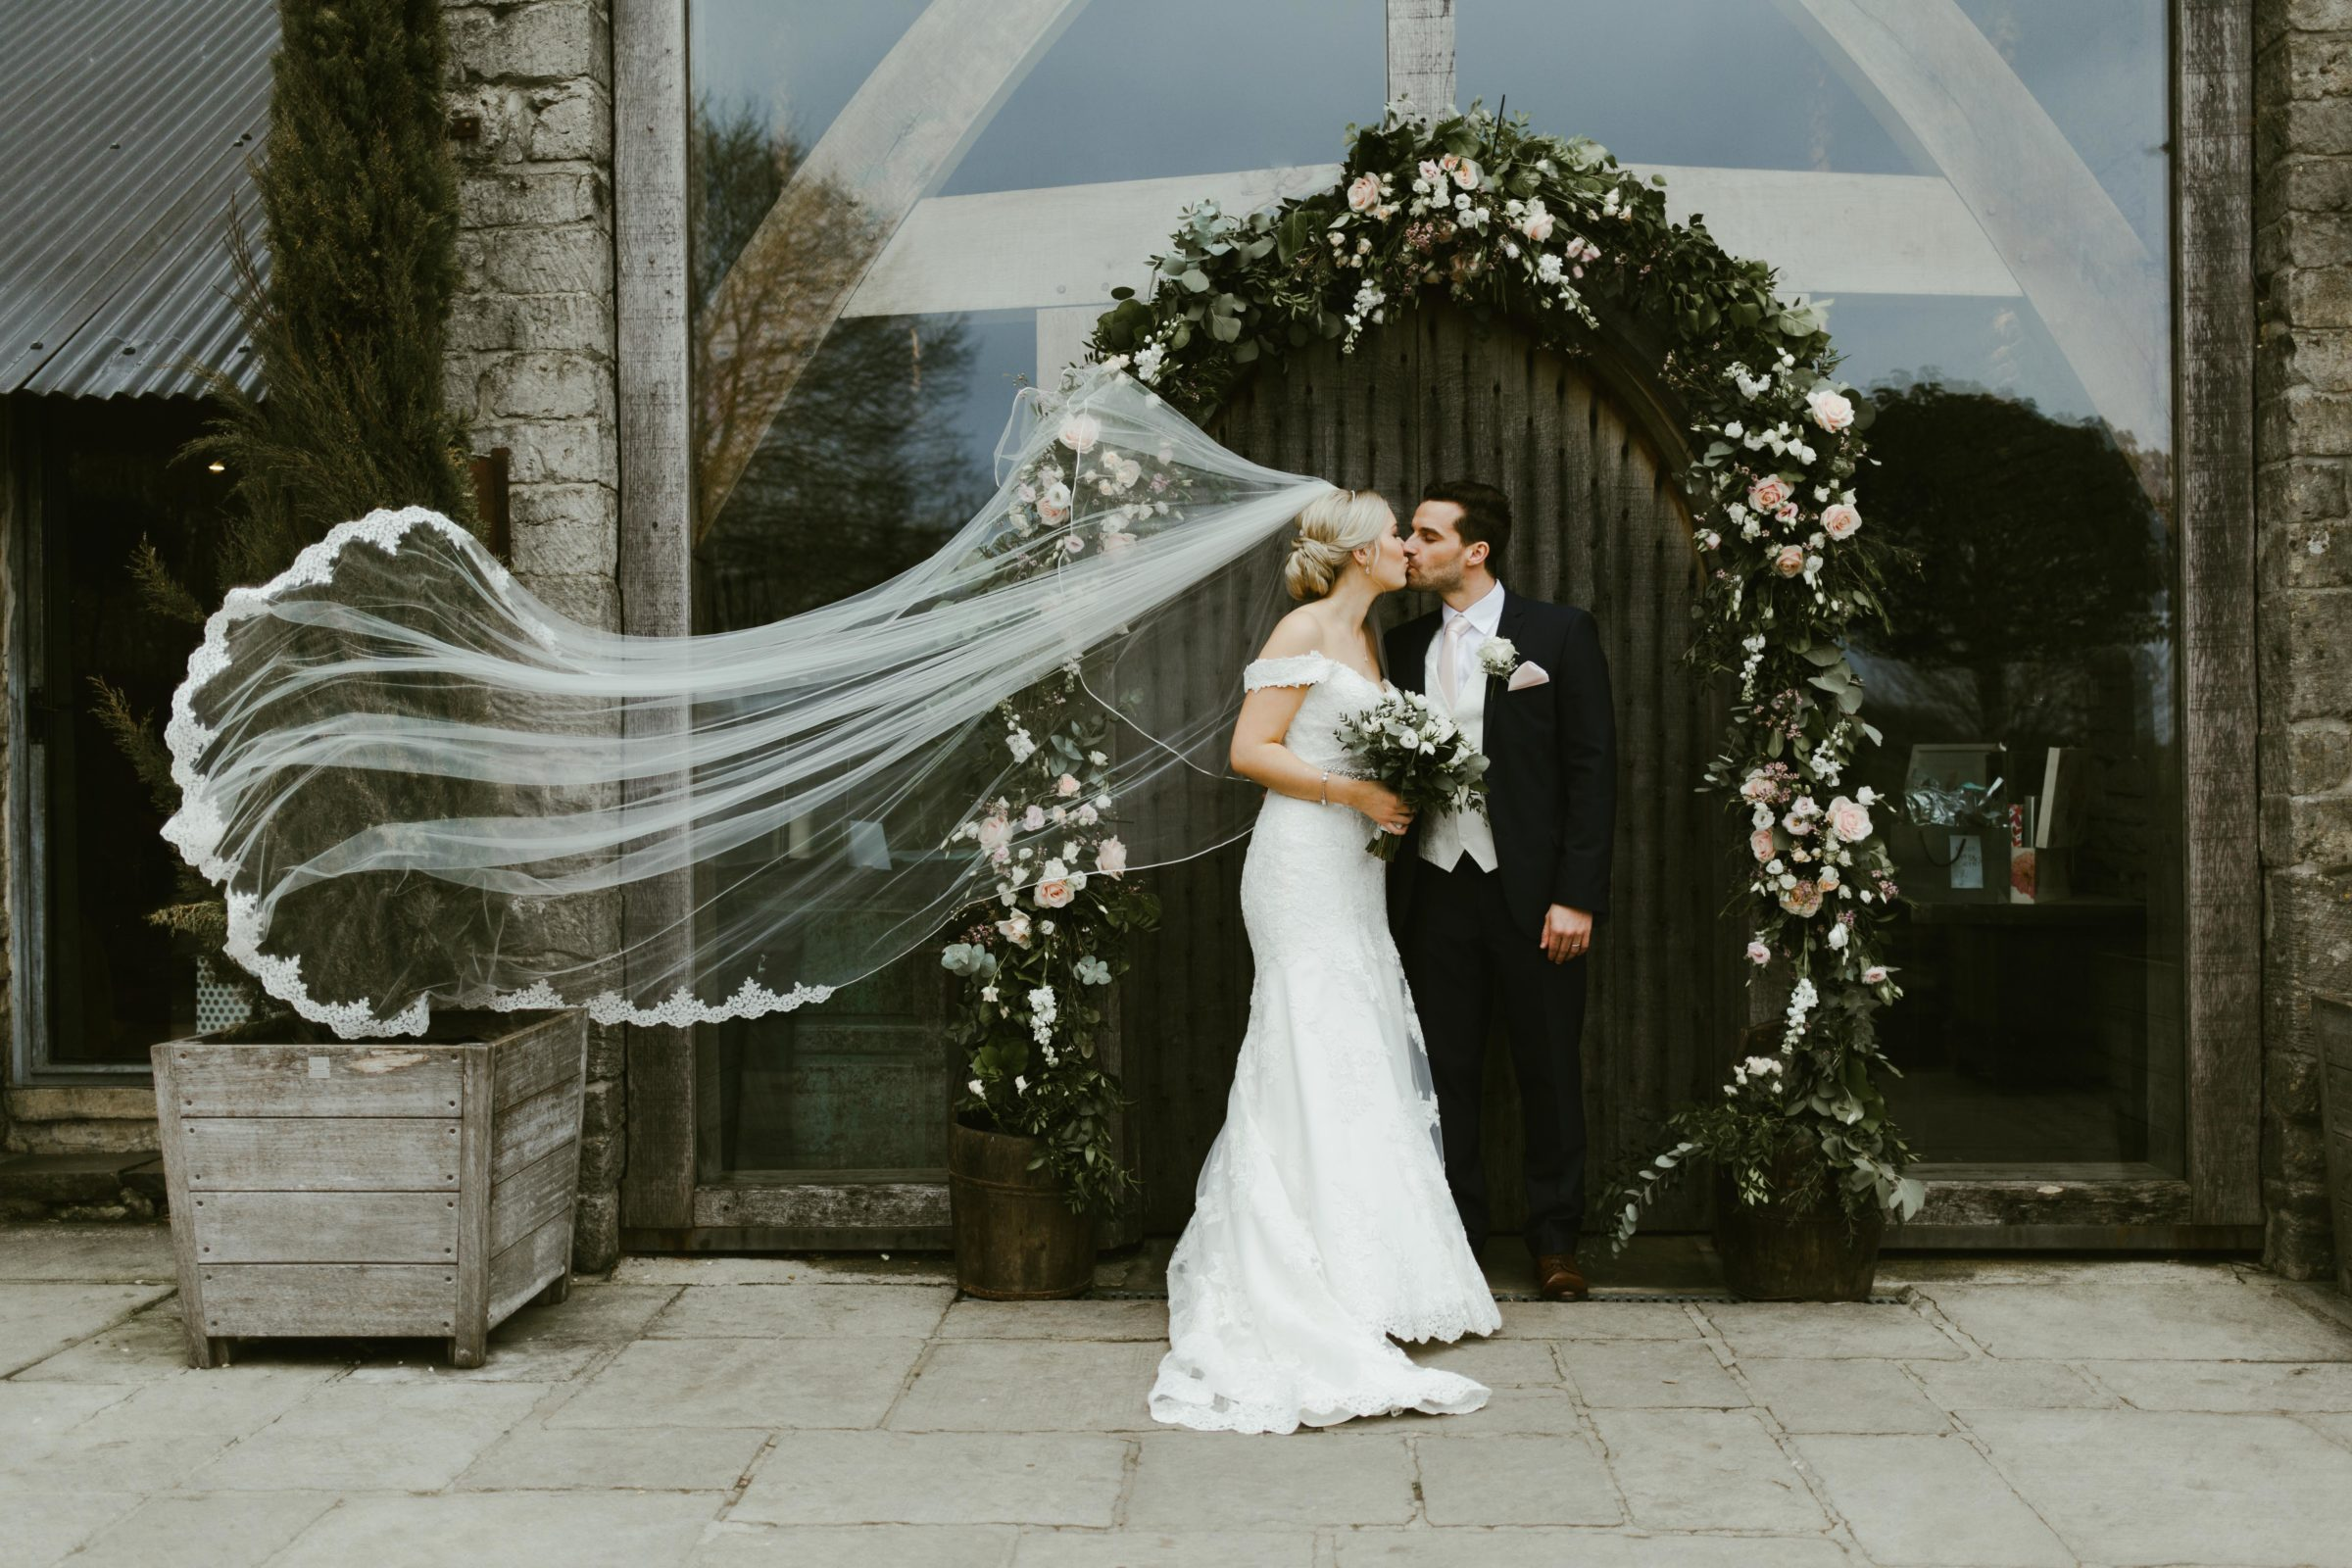 Jack & Fi – Rustic Wedding at Cripps Barn – March 2019